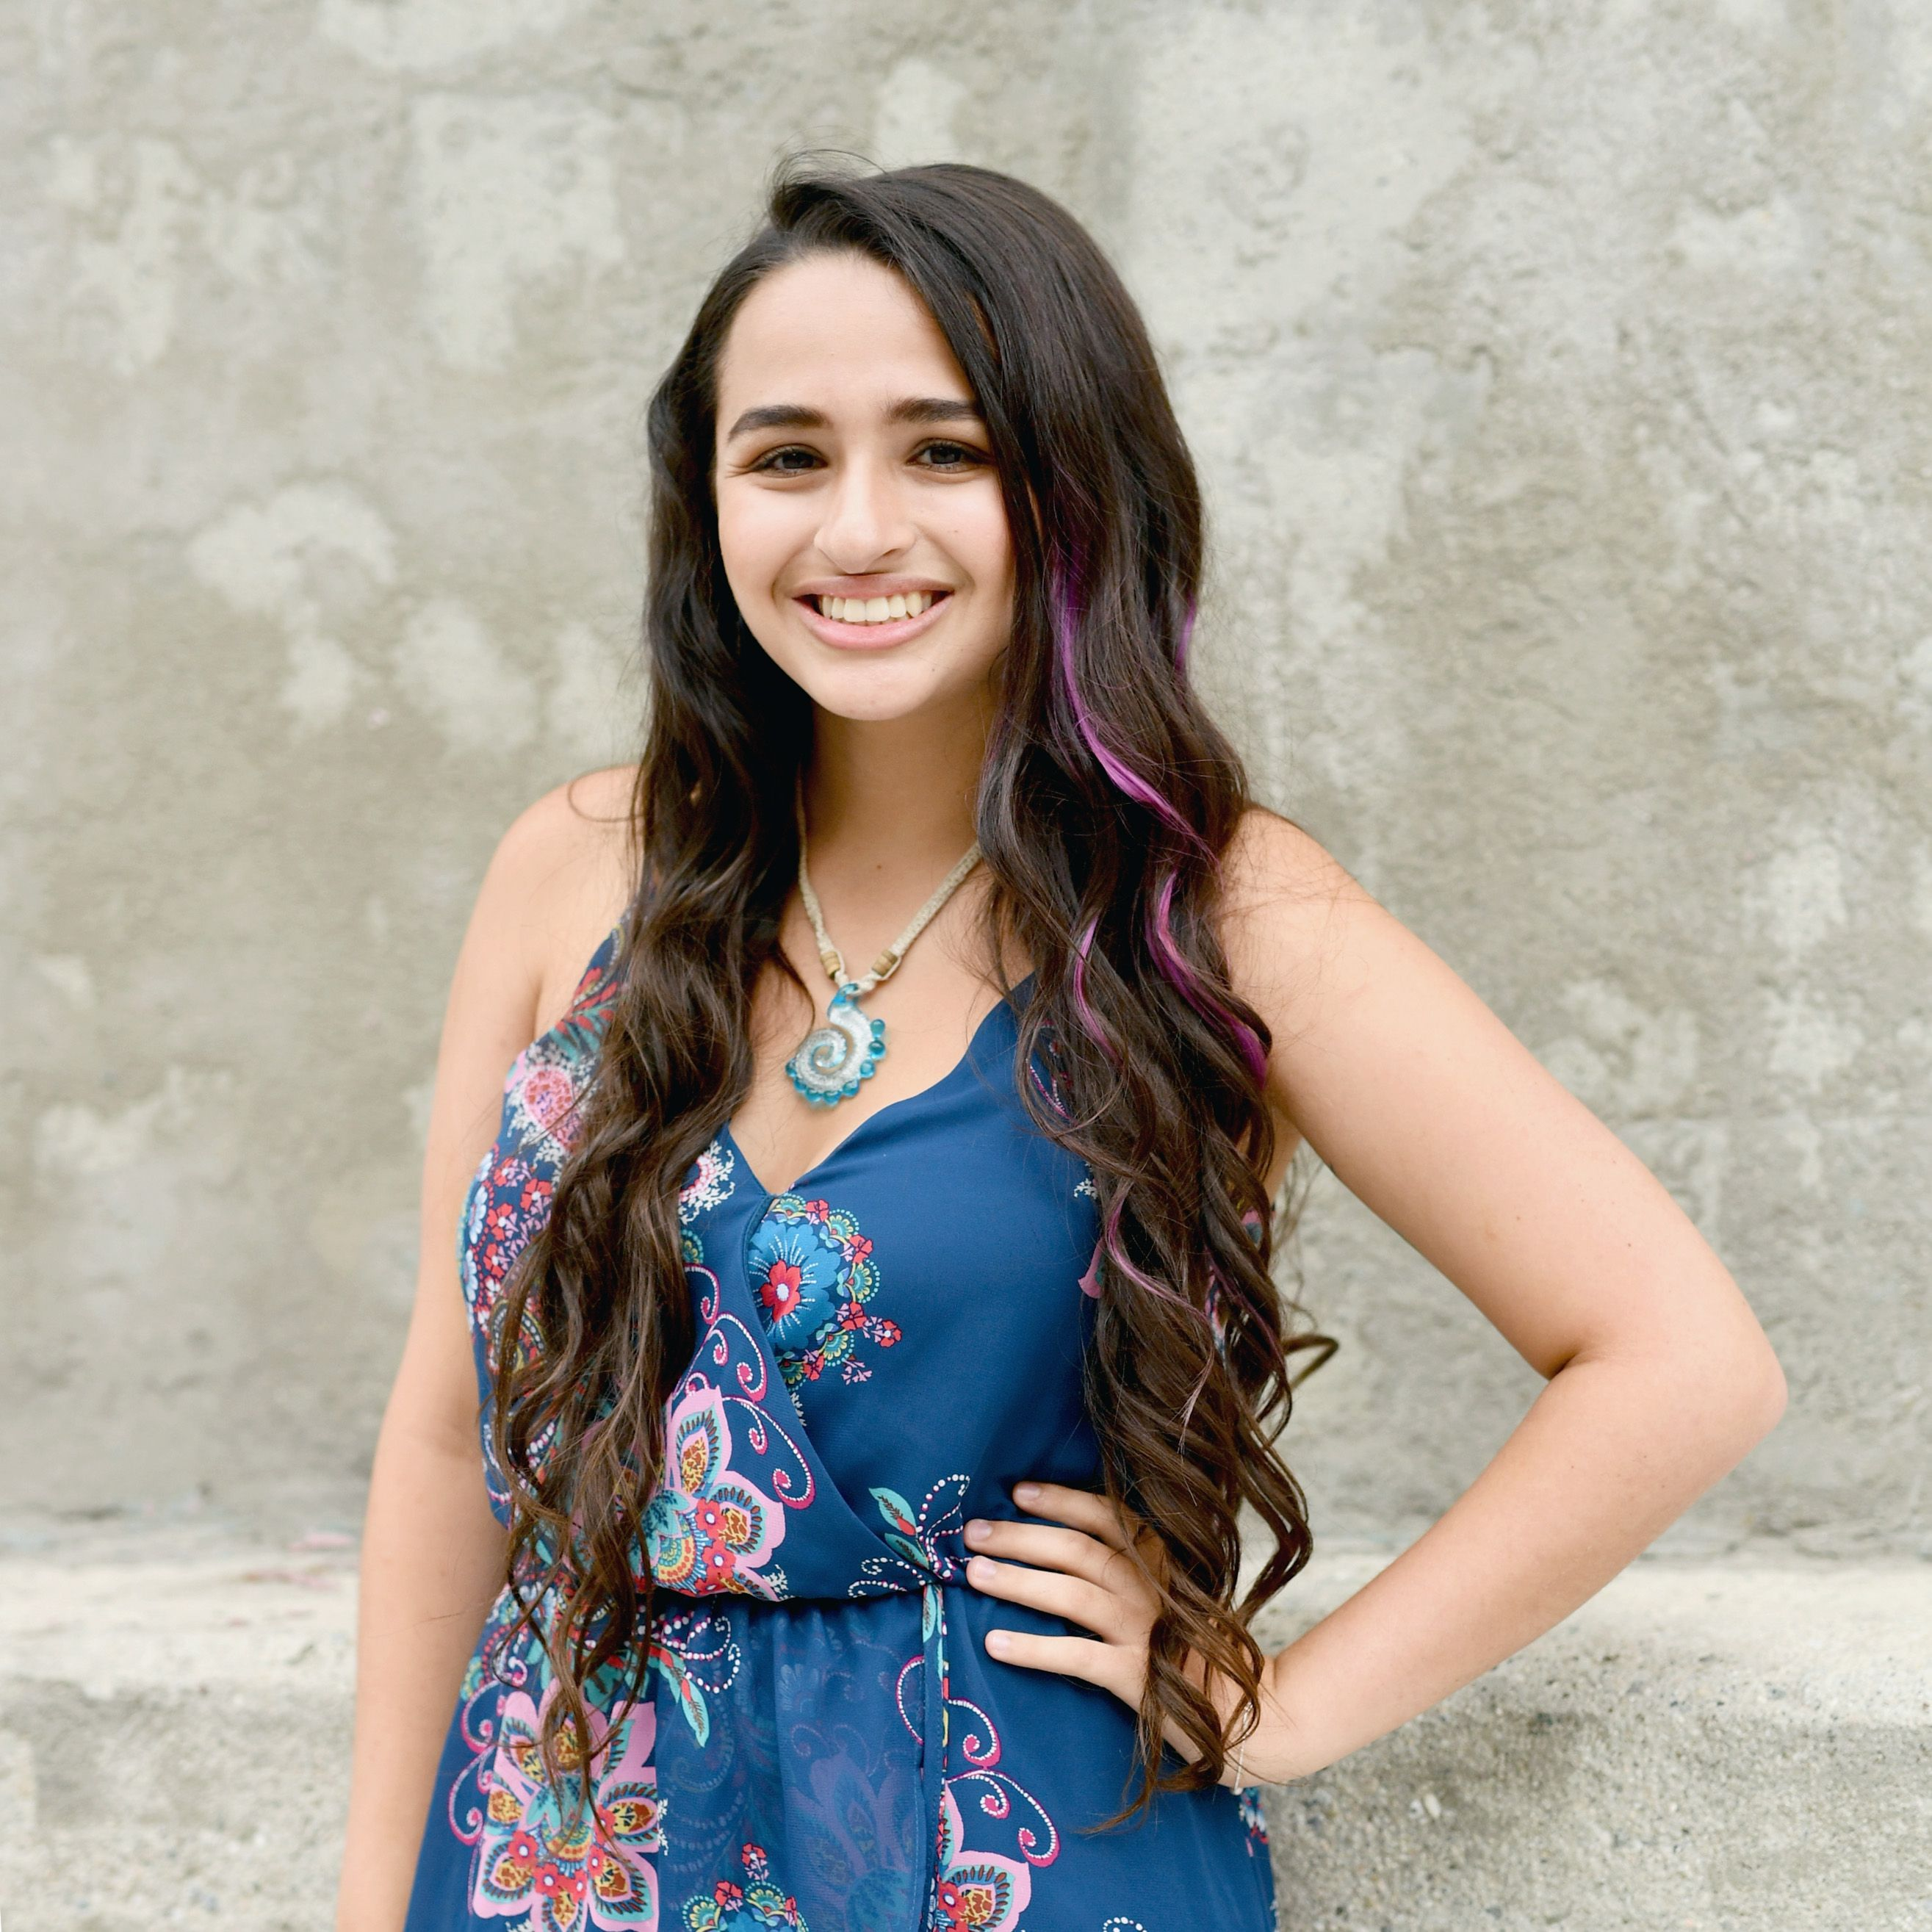 Winterjas Kind 2019.Jazz Jennings Shares More Details About Gender Surgery Complications